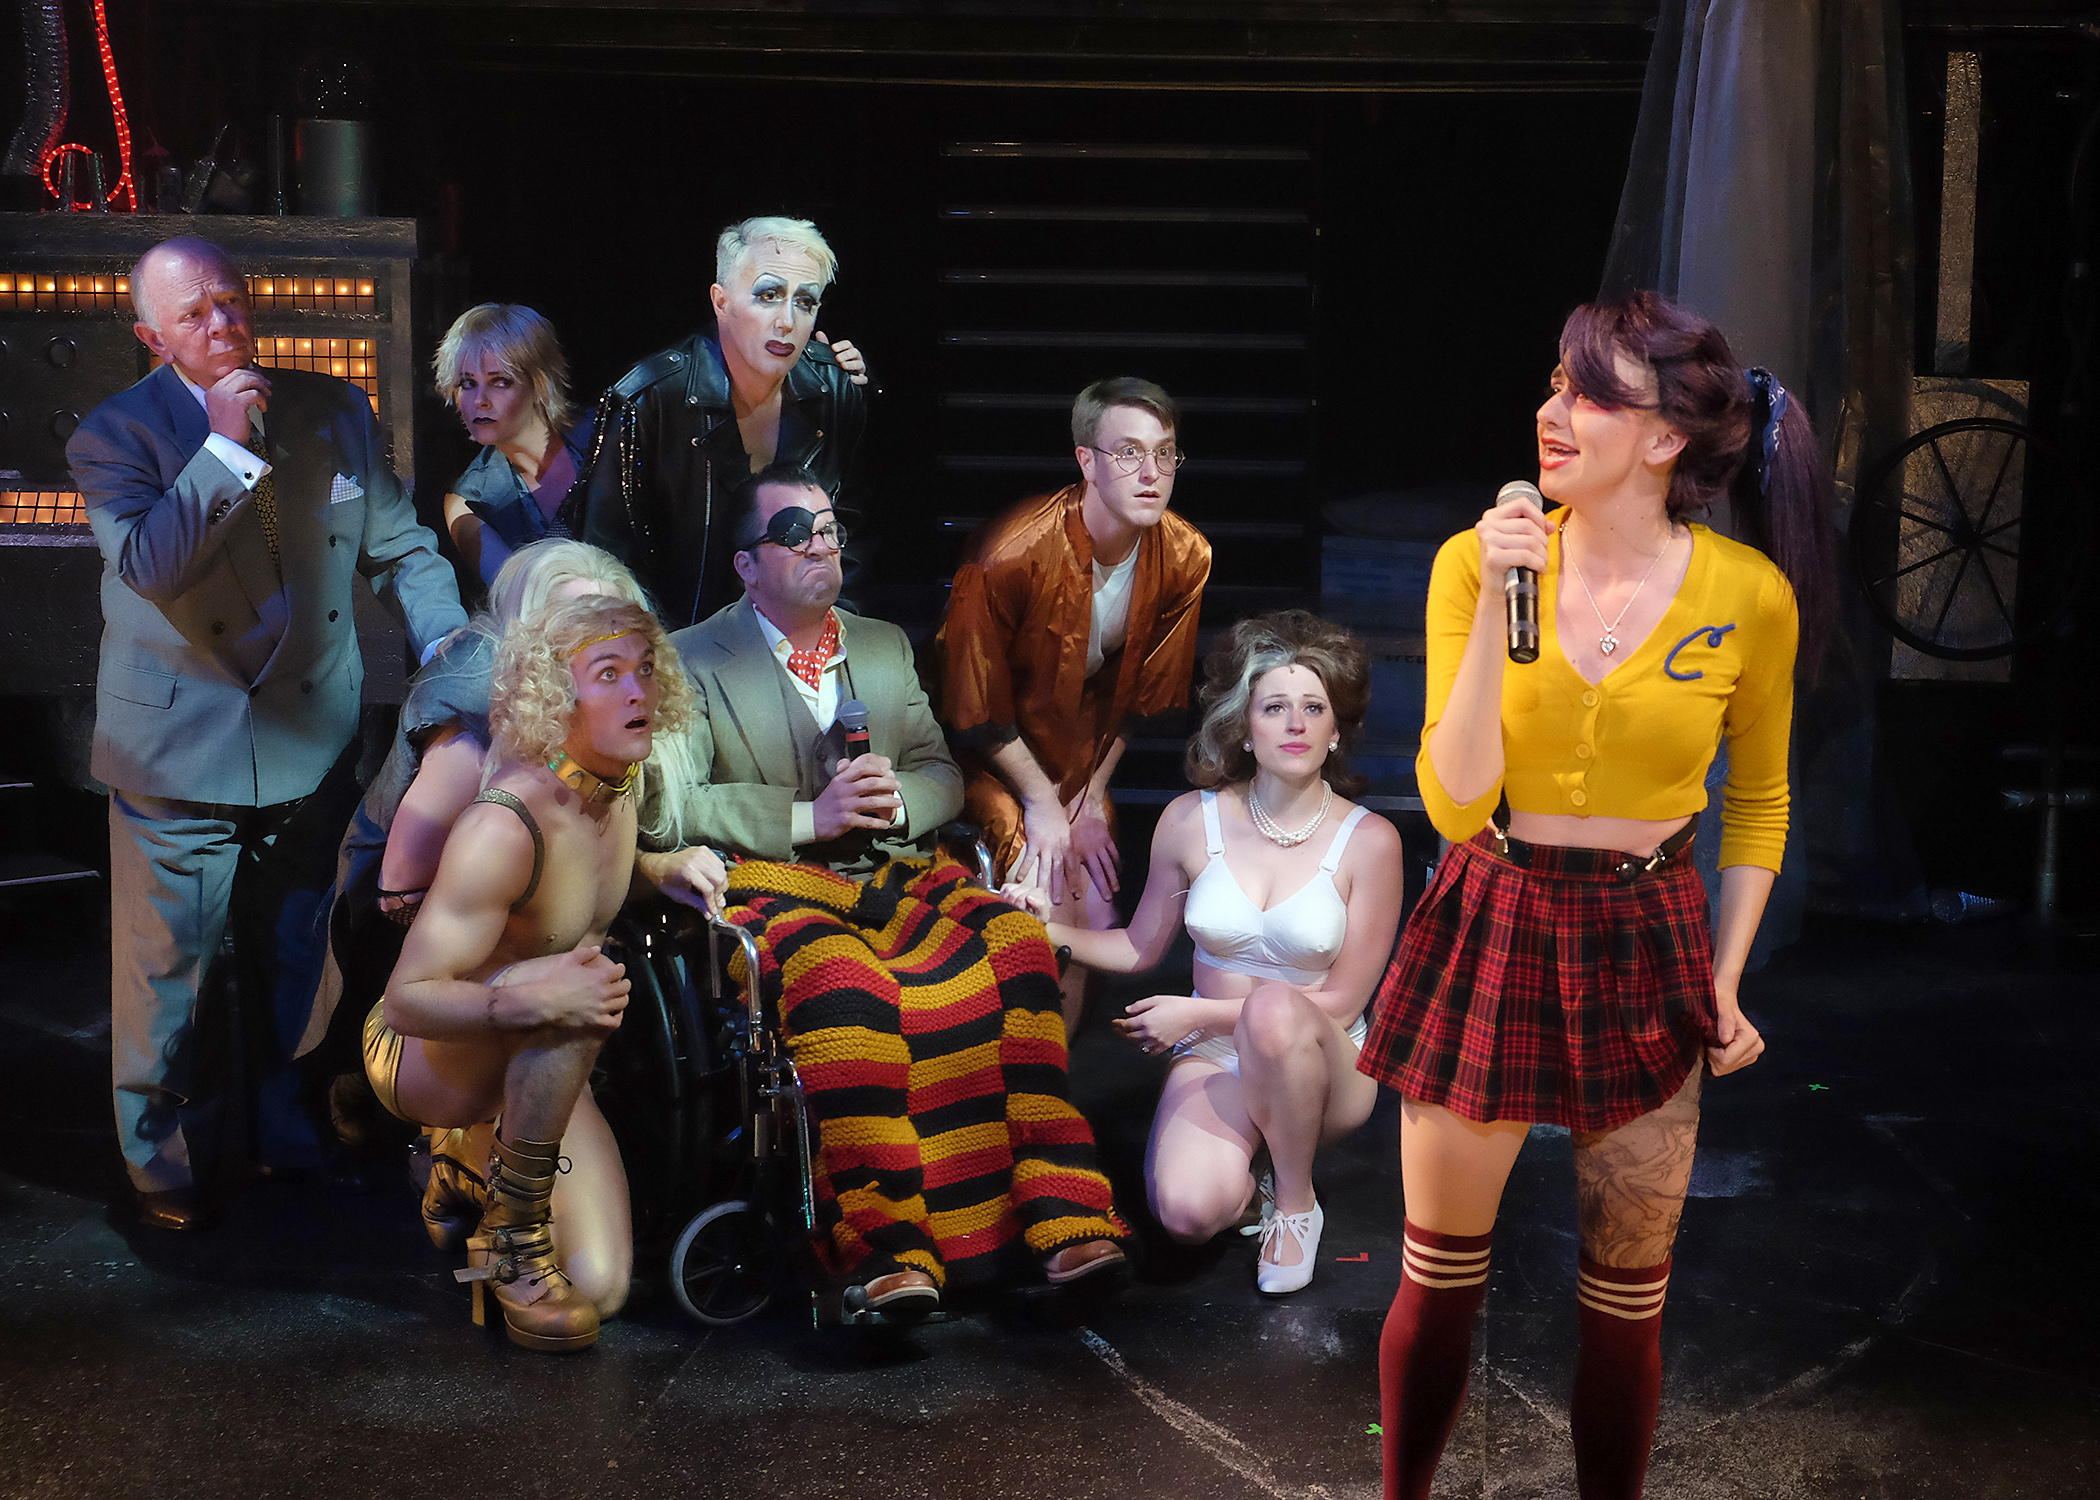 rocky horror picture show analysis essay The rocky horror picture show frank is something of a mad scientist, bent on creating the perfect life form to serve as his sexual plaything he seems to be the leader of the transylvanians on earth.